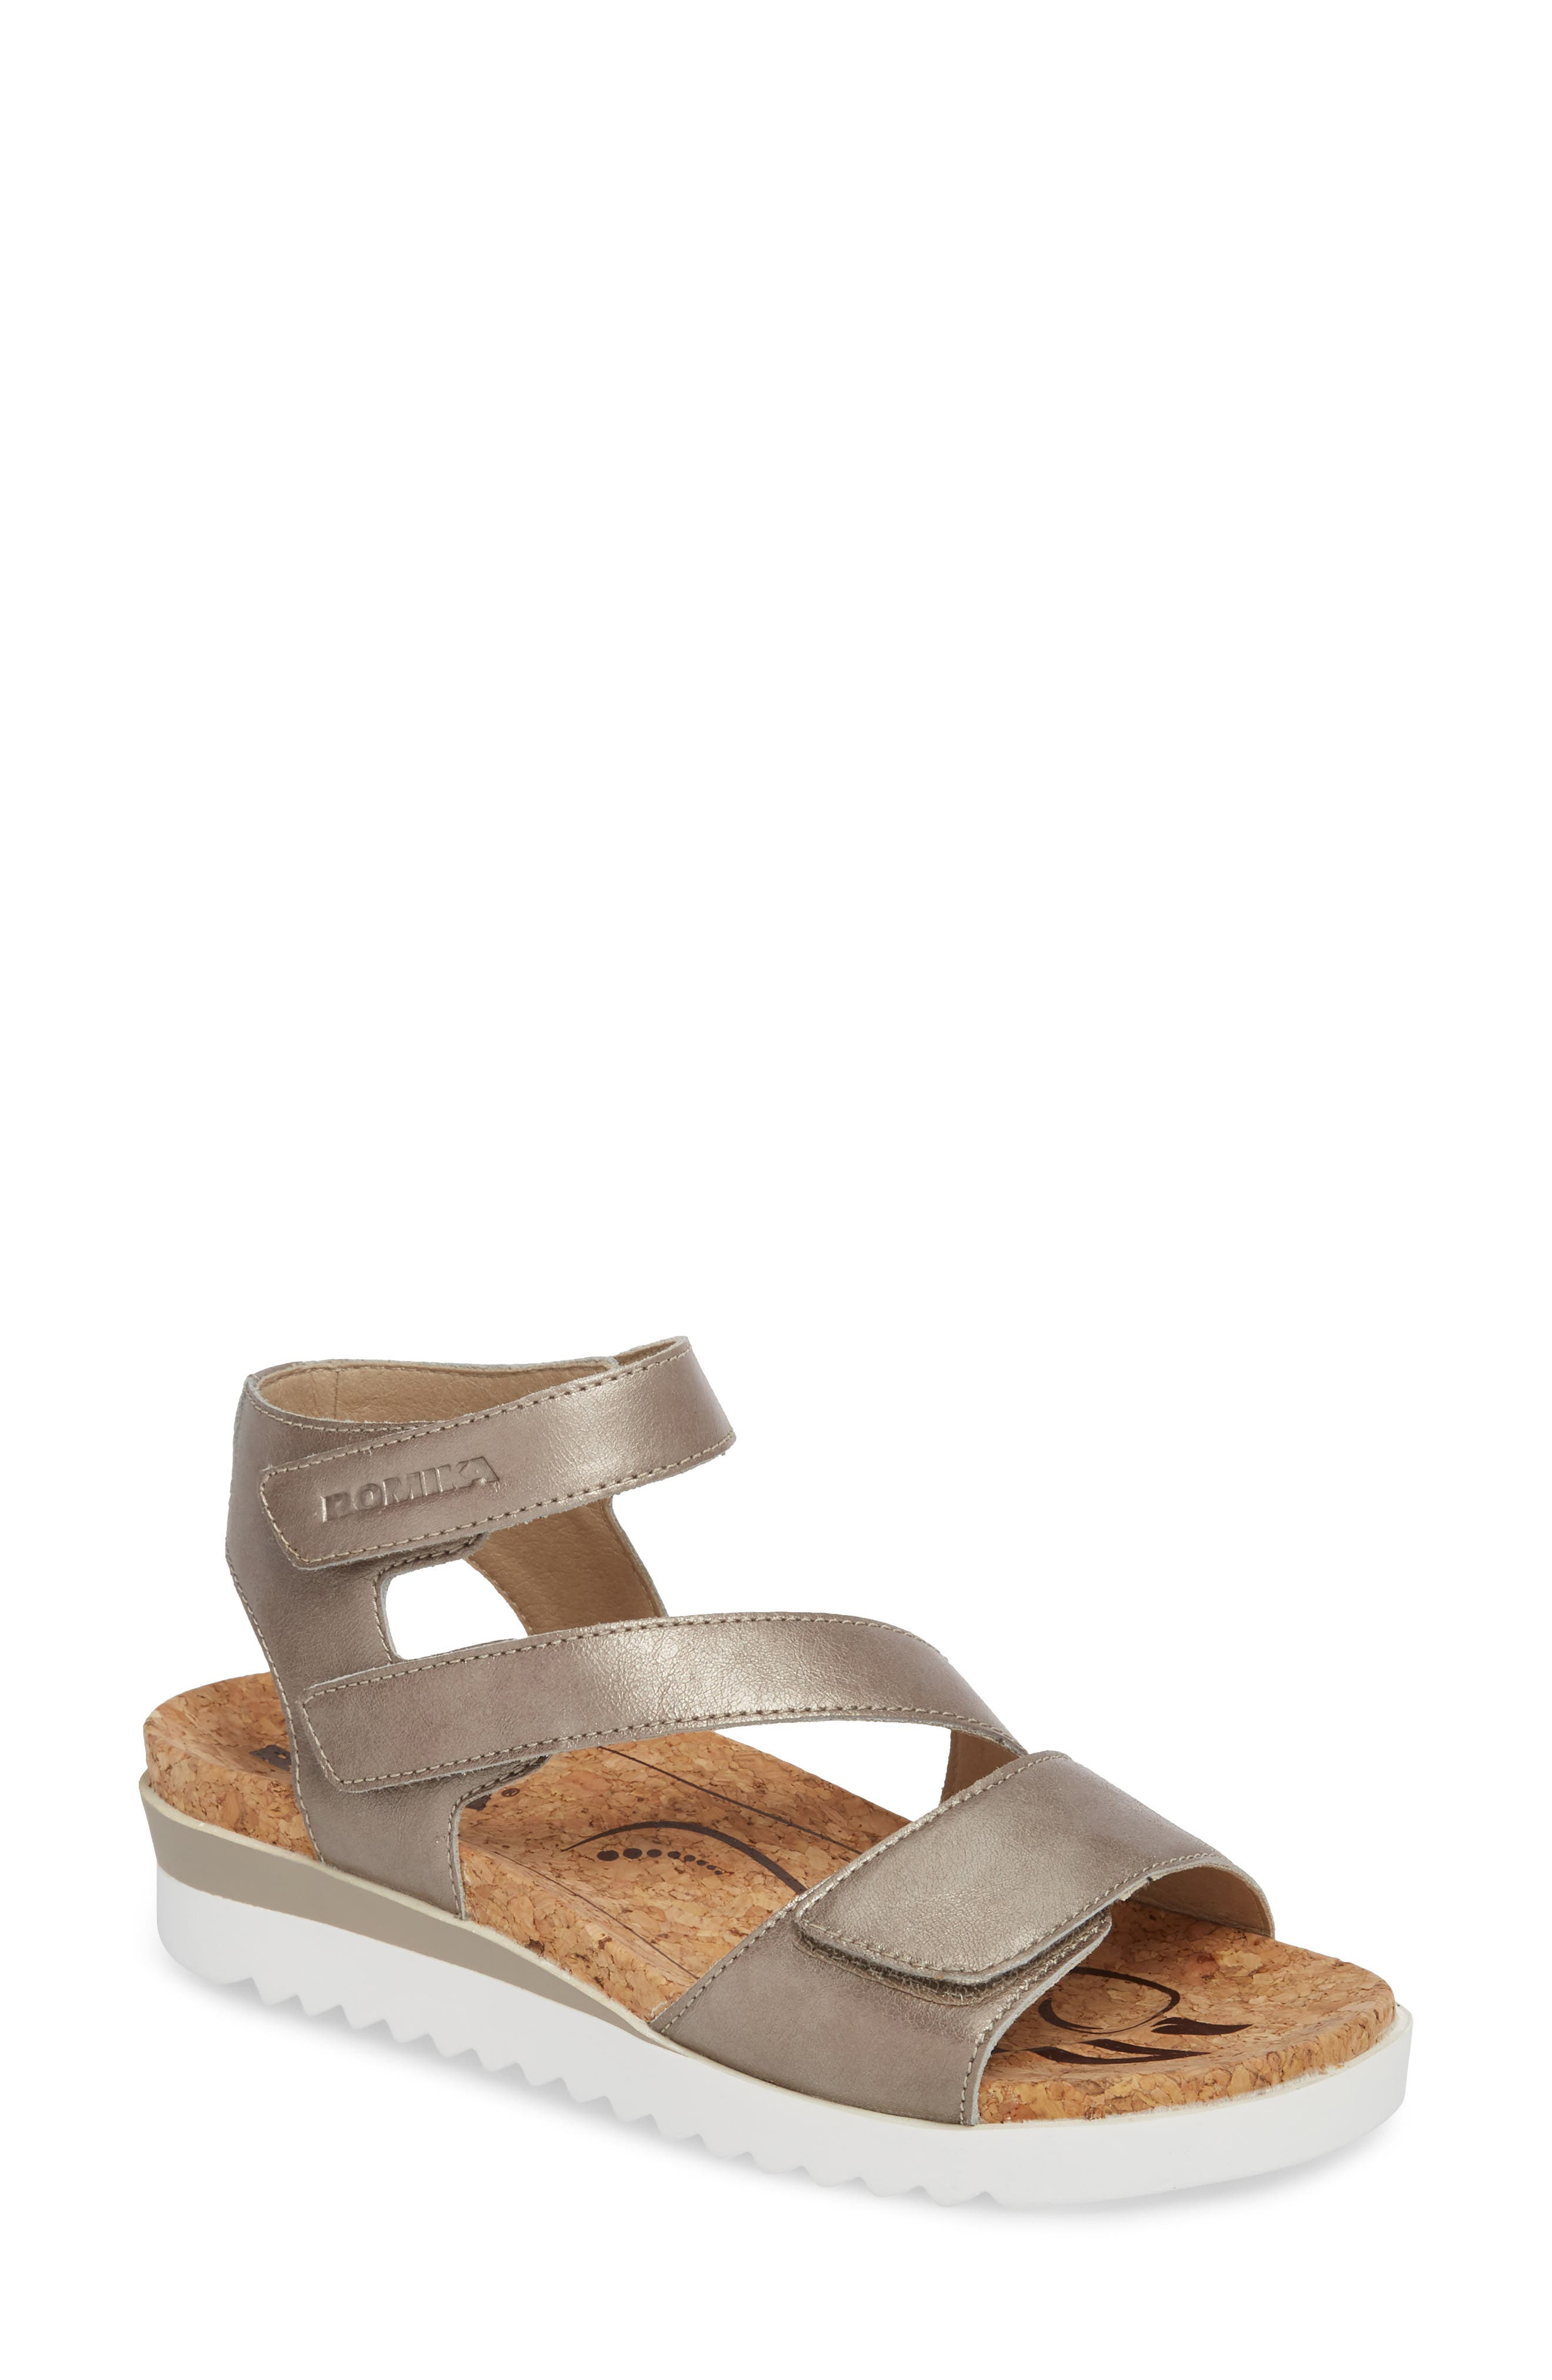 ROMIKA<SUP>®</SUP> Hollywood 04 Sandal, Main, color, PLATINUM LEATHER